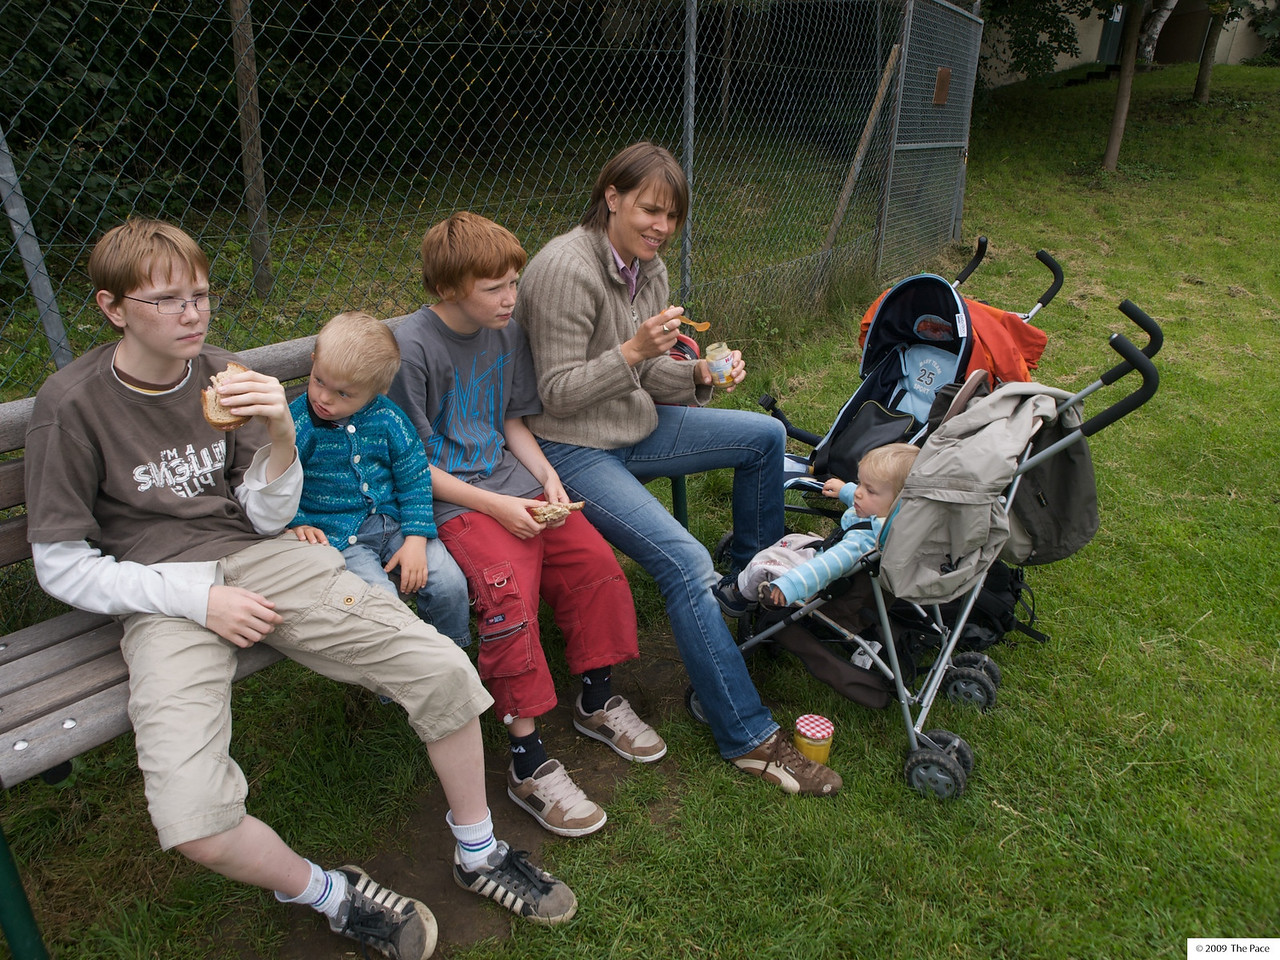 Wednesday 29th July 2009 - Having a picknick in affenberg (monkey mountain) in germany